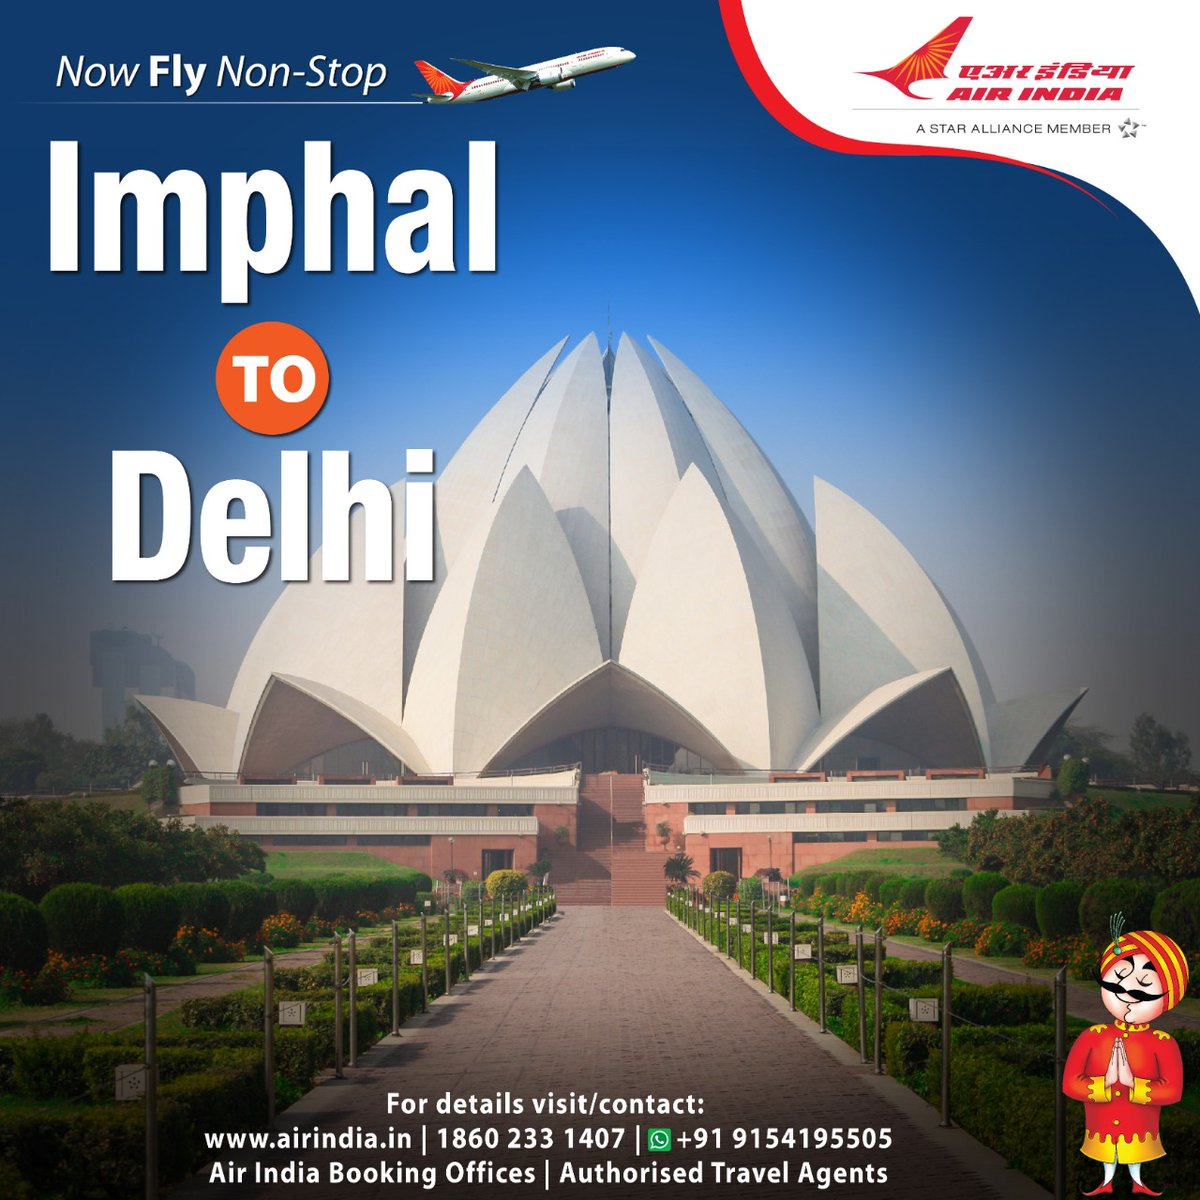 #FlyAI : Fly non-stop from Imphal to Delhi.  To book seats, please visit our website